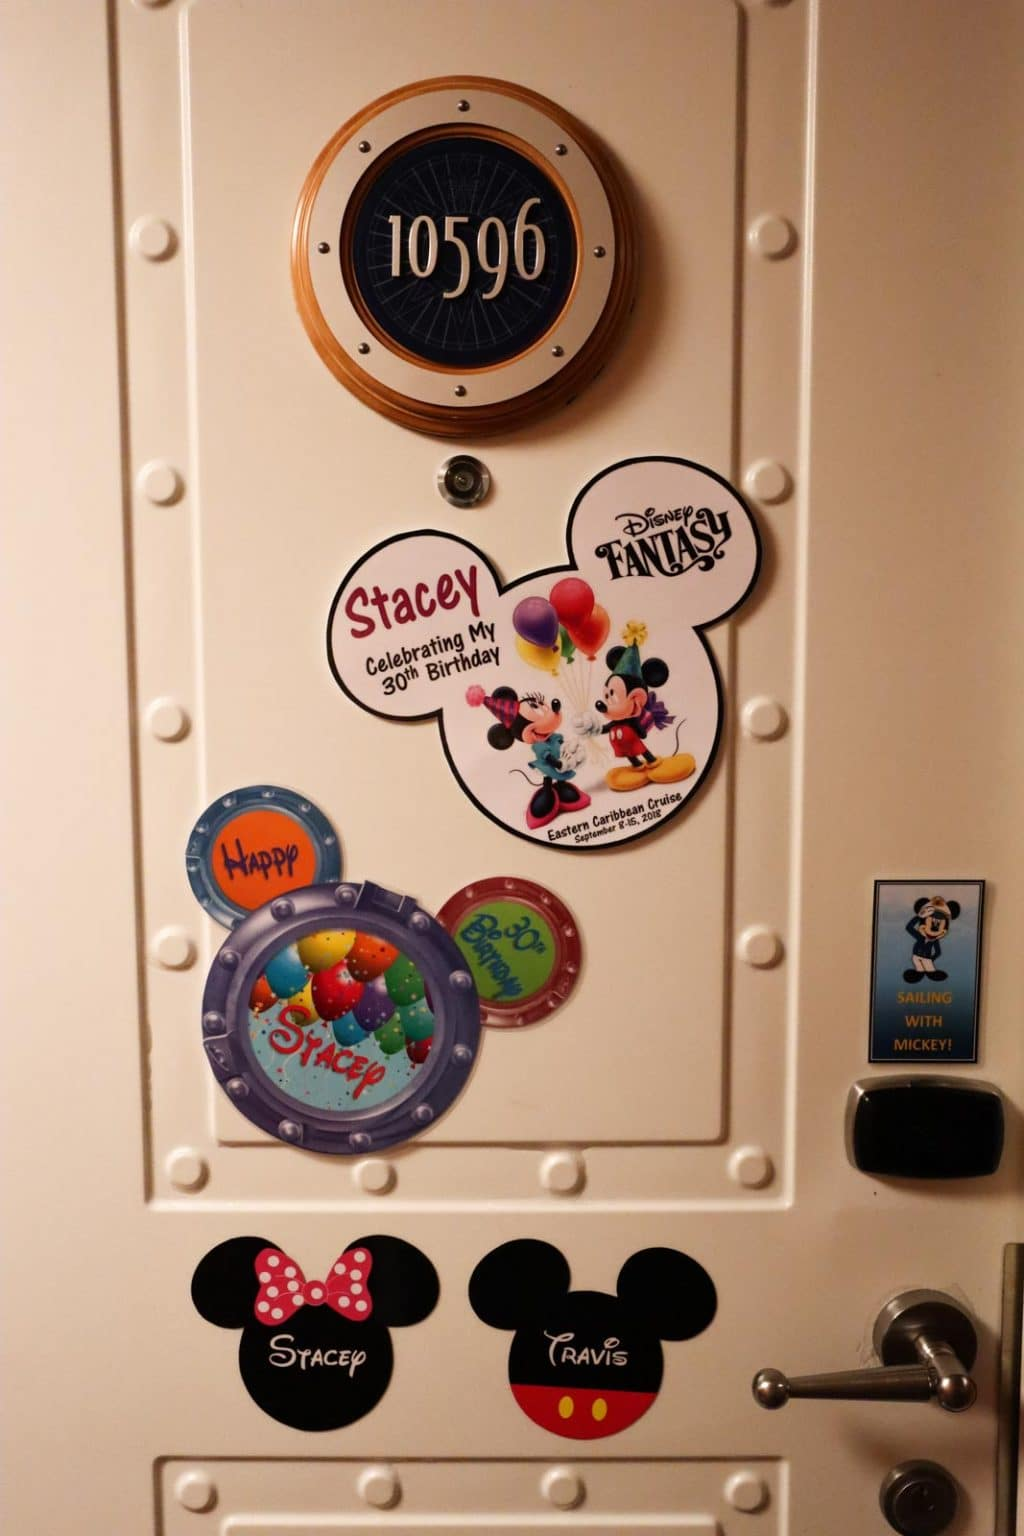 Stateroom #10596 on the Disney Fantasy decorated with Disney-themed magnets.